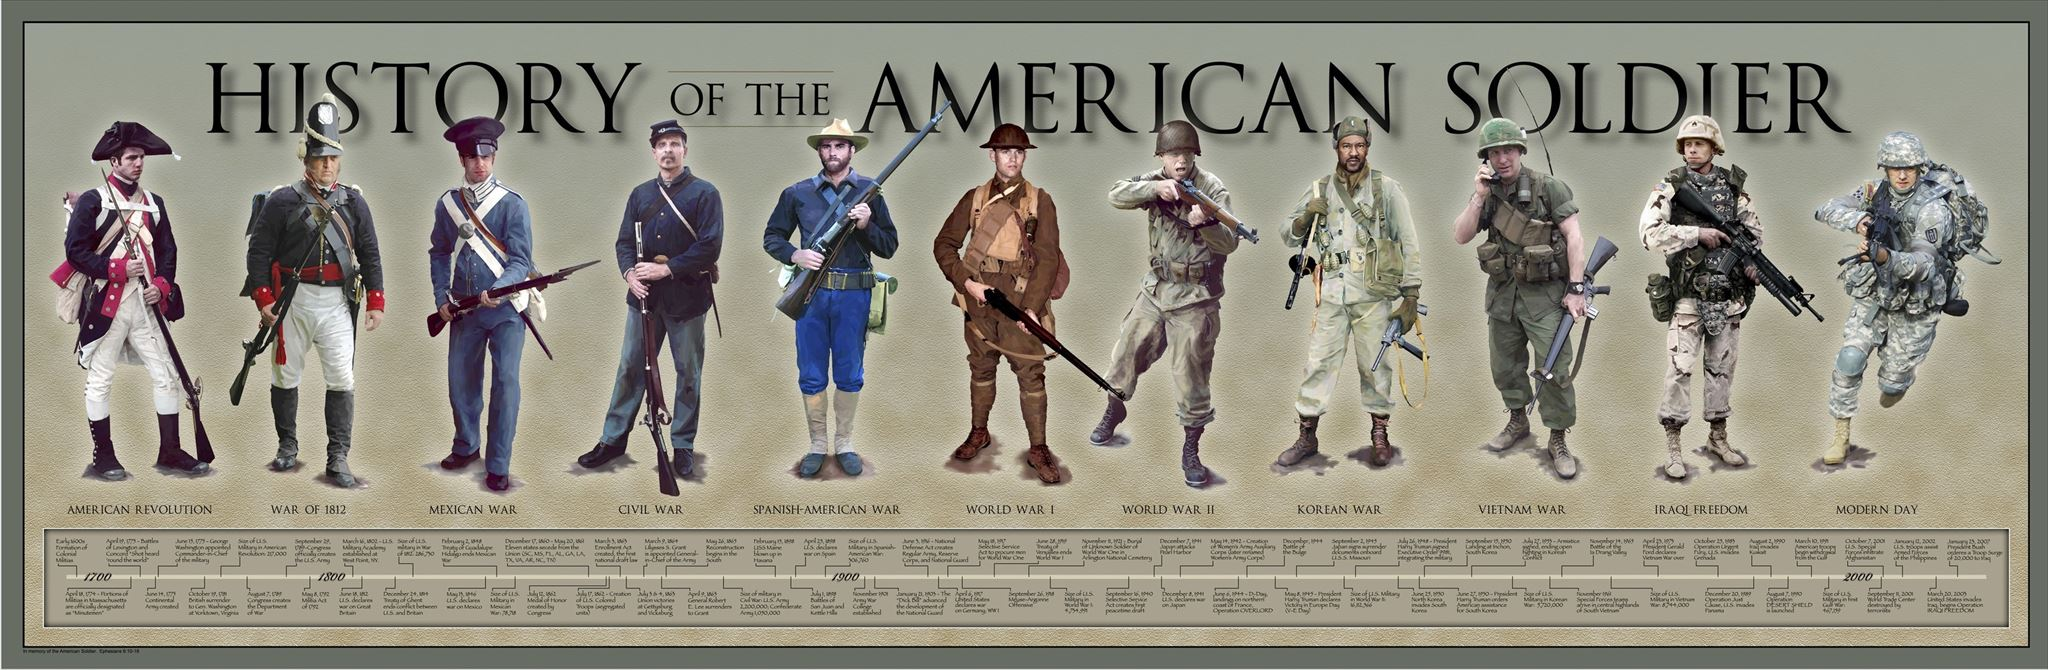 the evolution of american military from 18th to 20th century